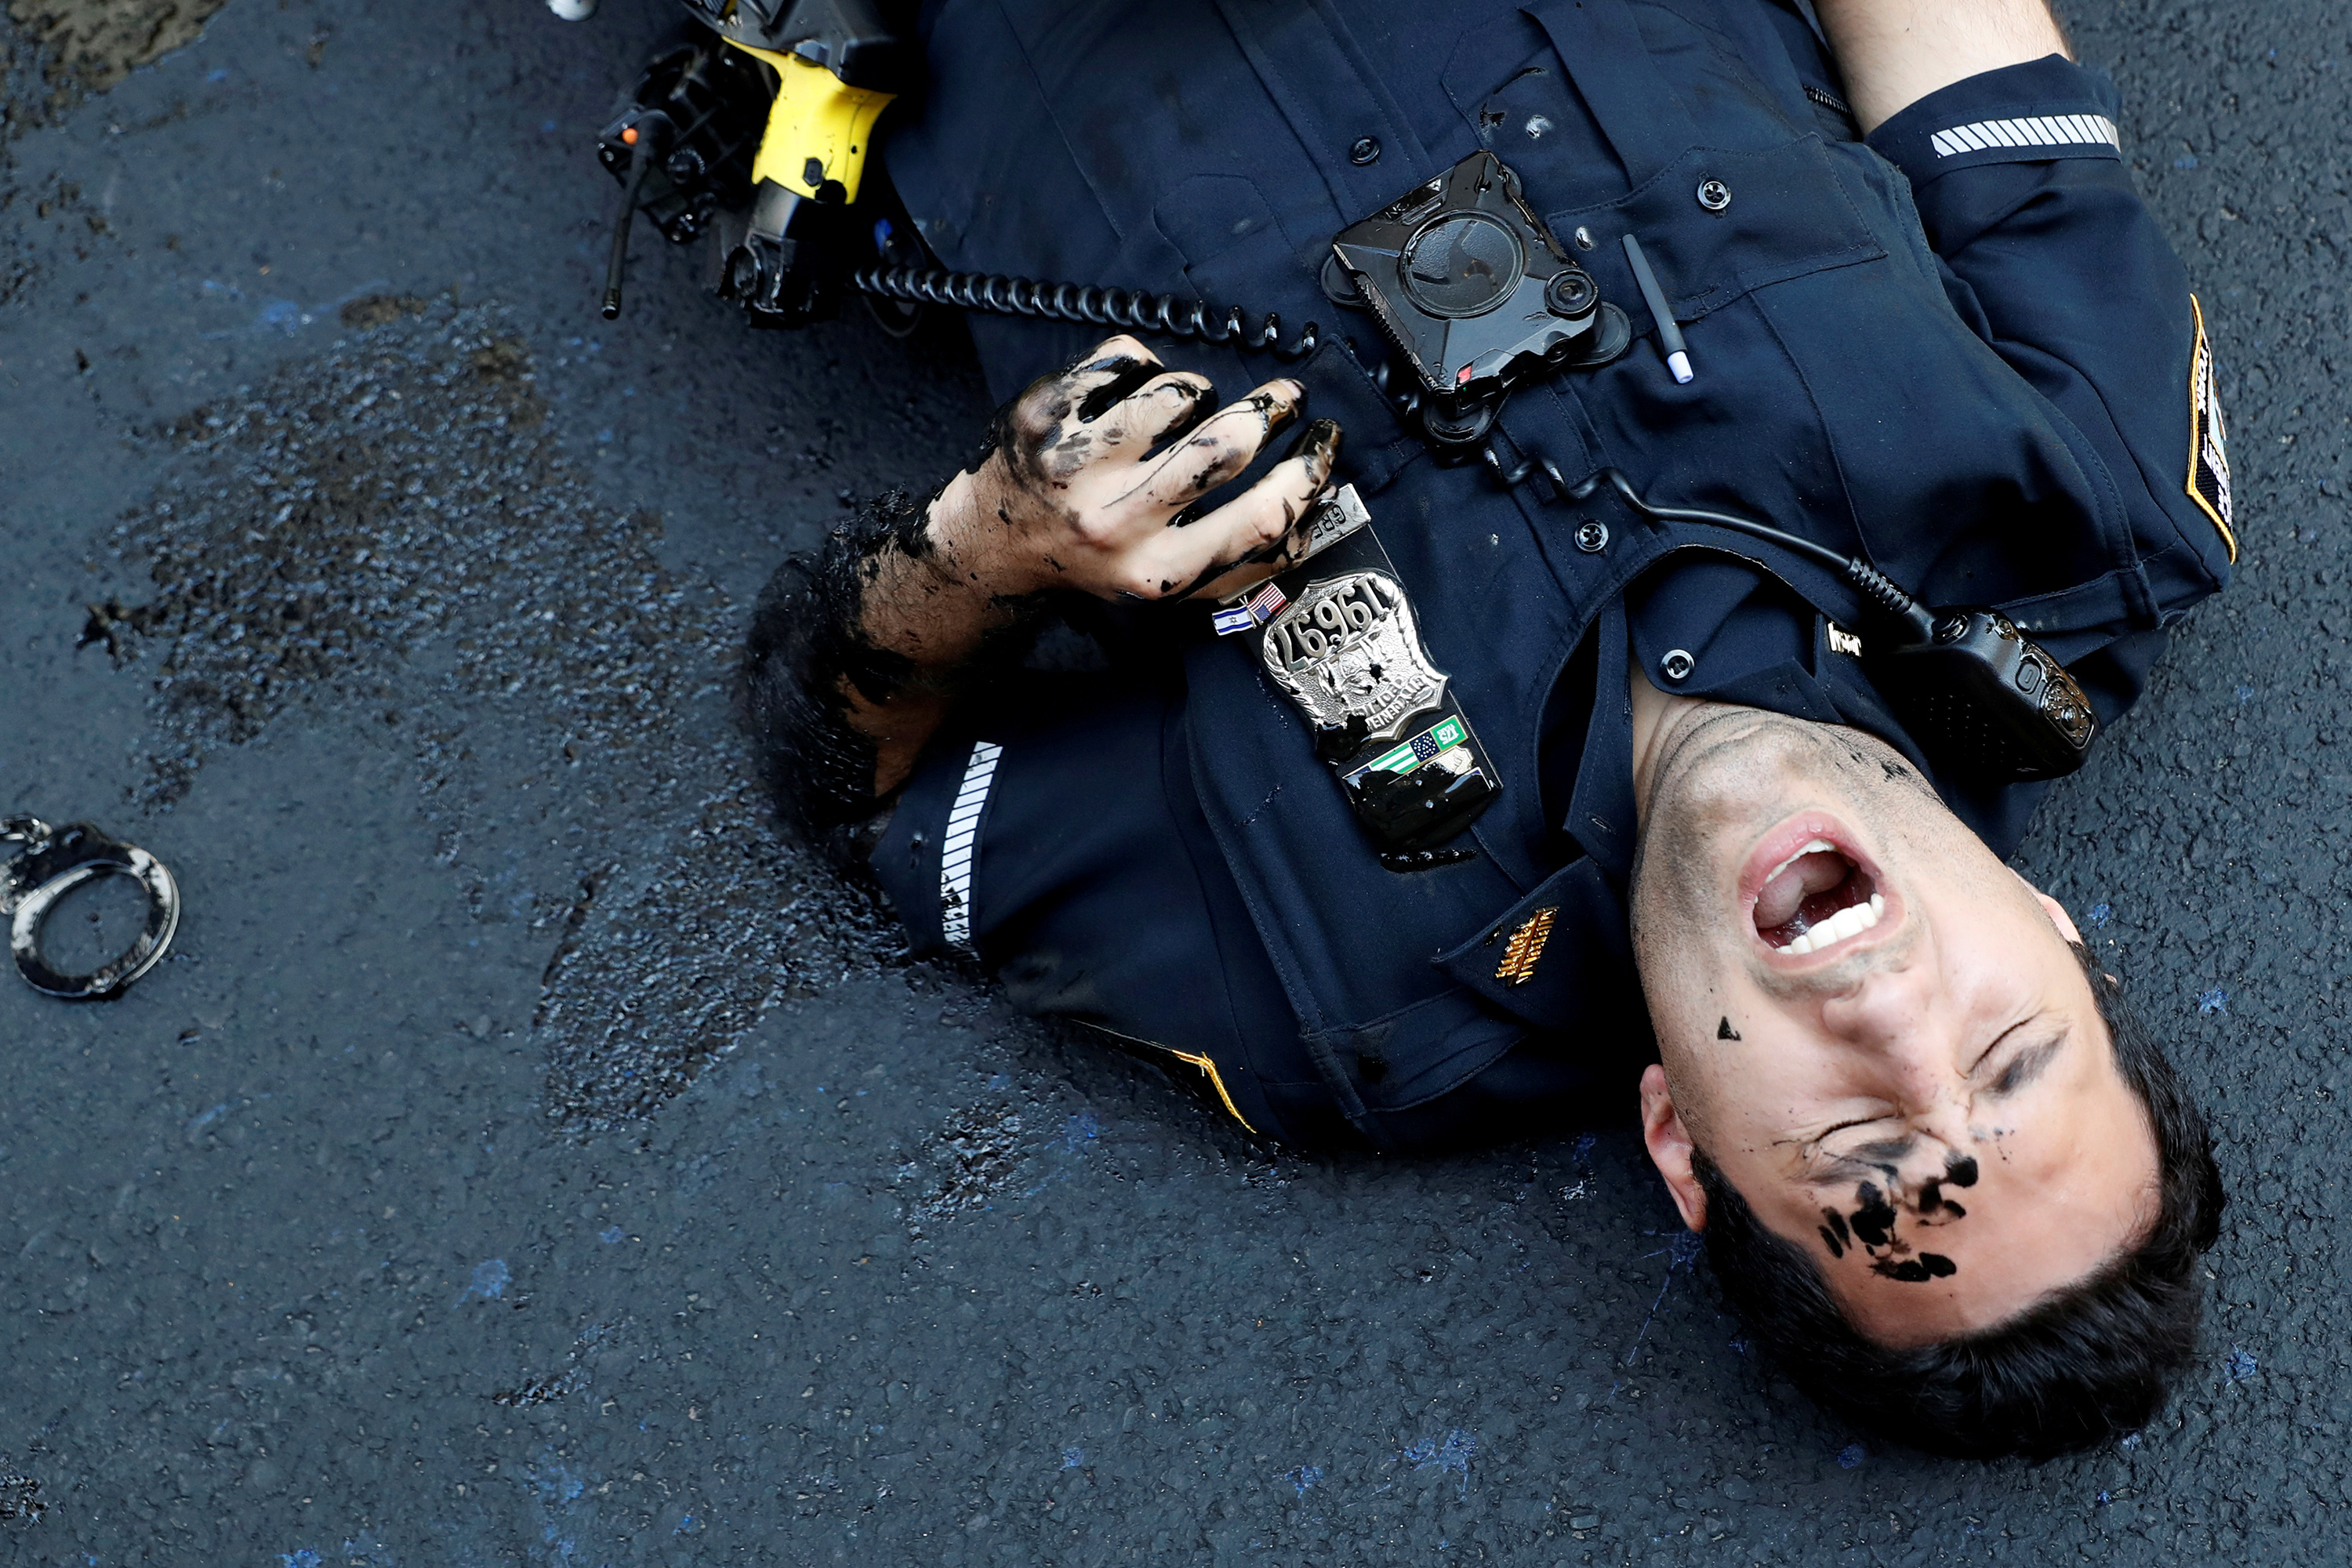 An officer from the New York Police Department is seen injured after attempting to detain a protester smearing paint on the Black Lives Matter mural outside of Trump Tower on Fifth Avenue in Manhattan, New York City, U.S., July 18, 2020